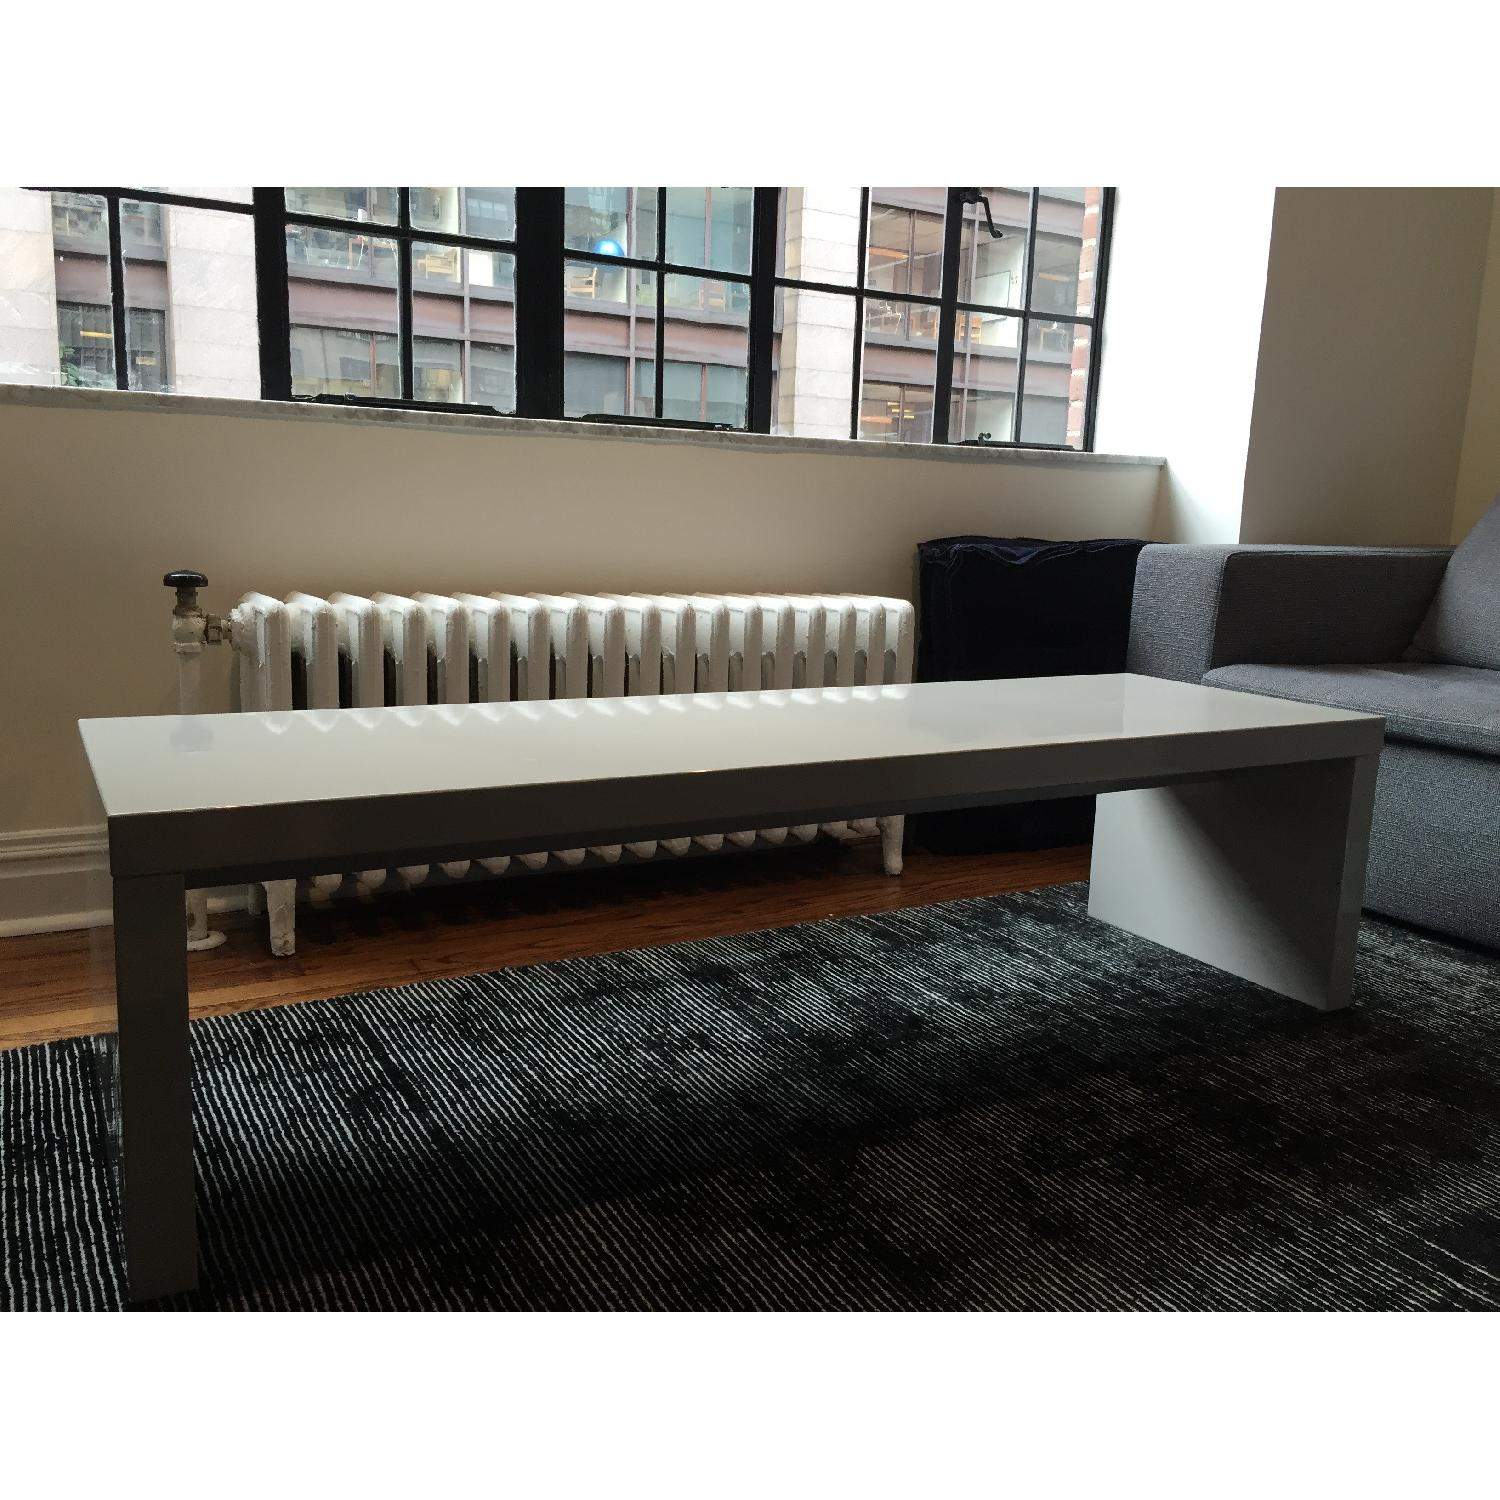 CB2 Coffee Table/Bench - image-6